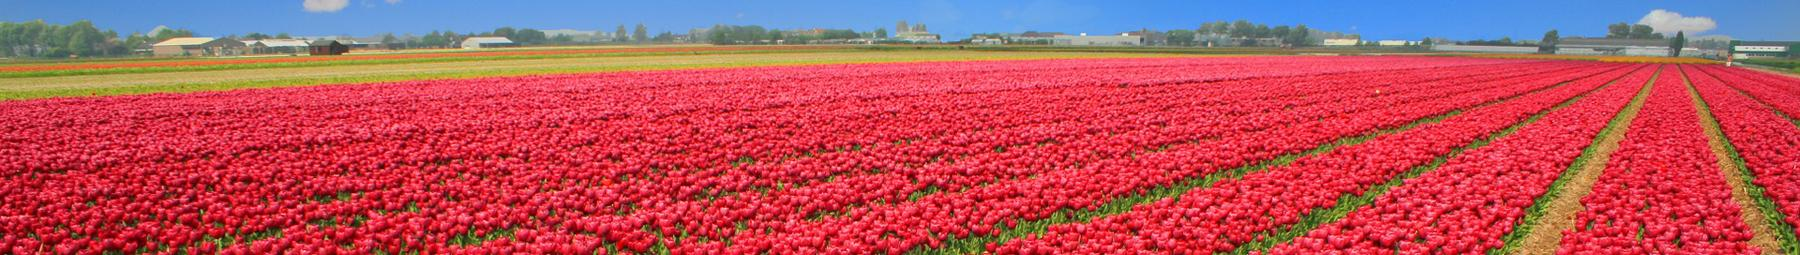 Massive field of tulips in full bloom, Holland.